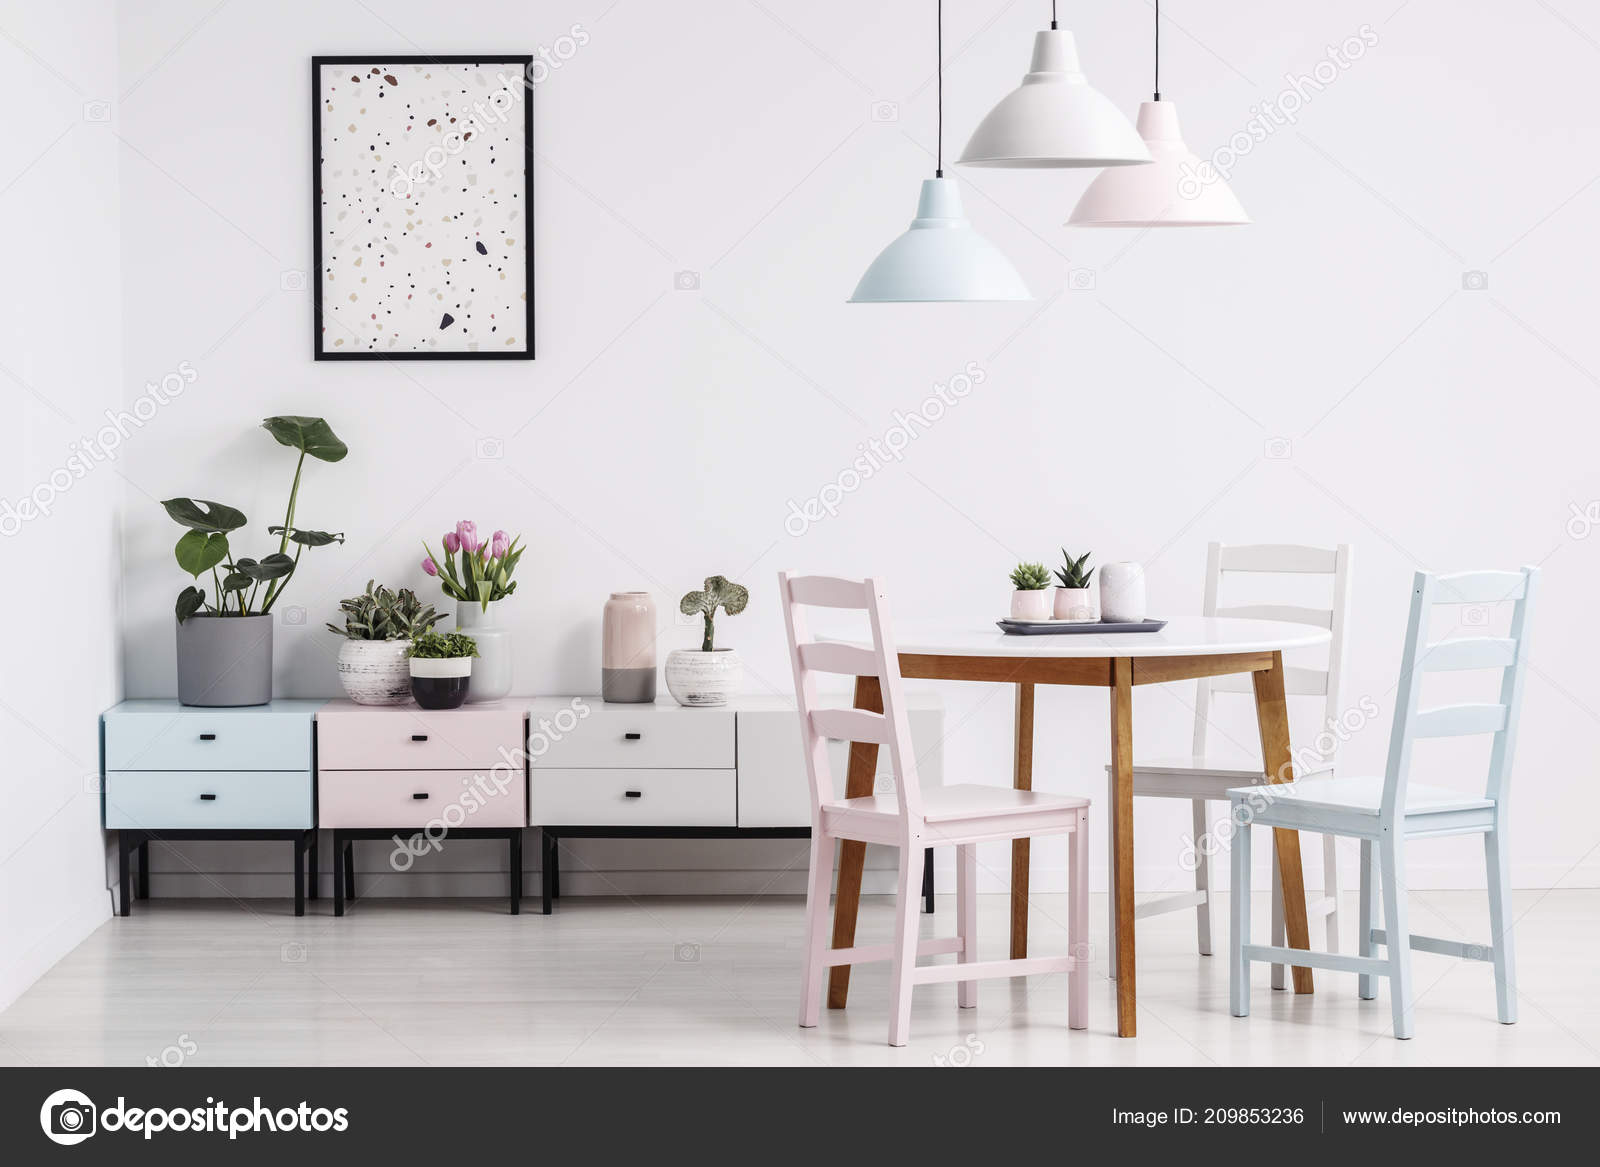 Table Chairs Lamps Poster Shelves, Cute Dining Room Chairs